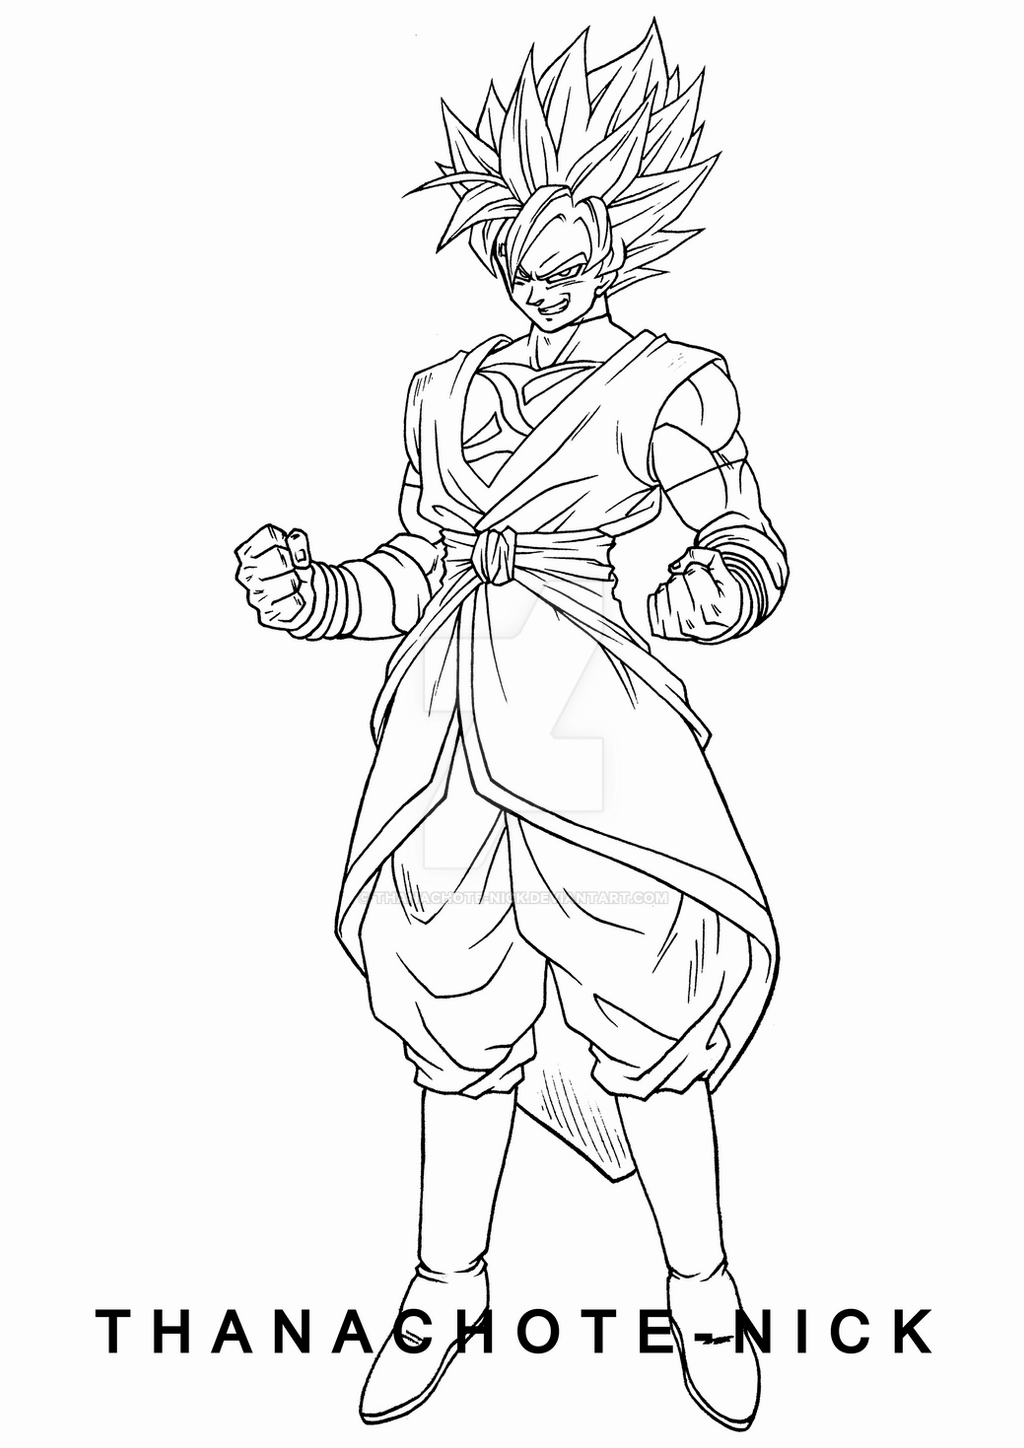 goku black coloring pages goku xeno ssj3 sdbh lineart by lucario strike on deviantart black pages goku coloring